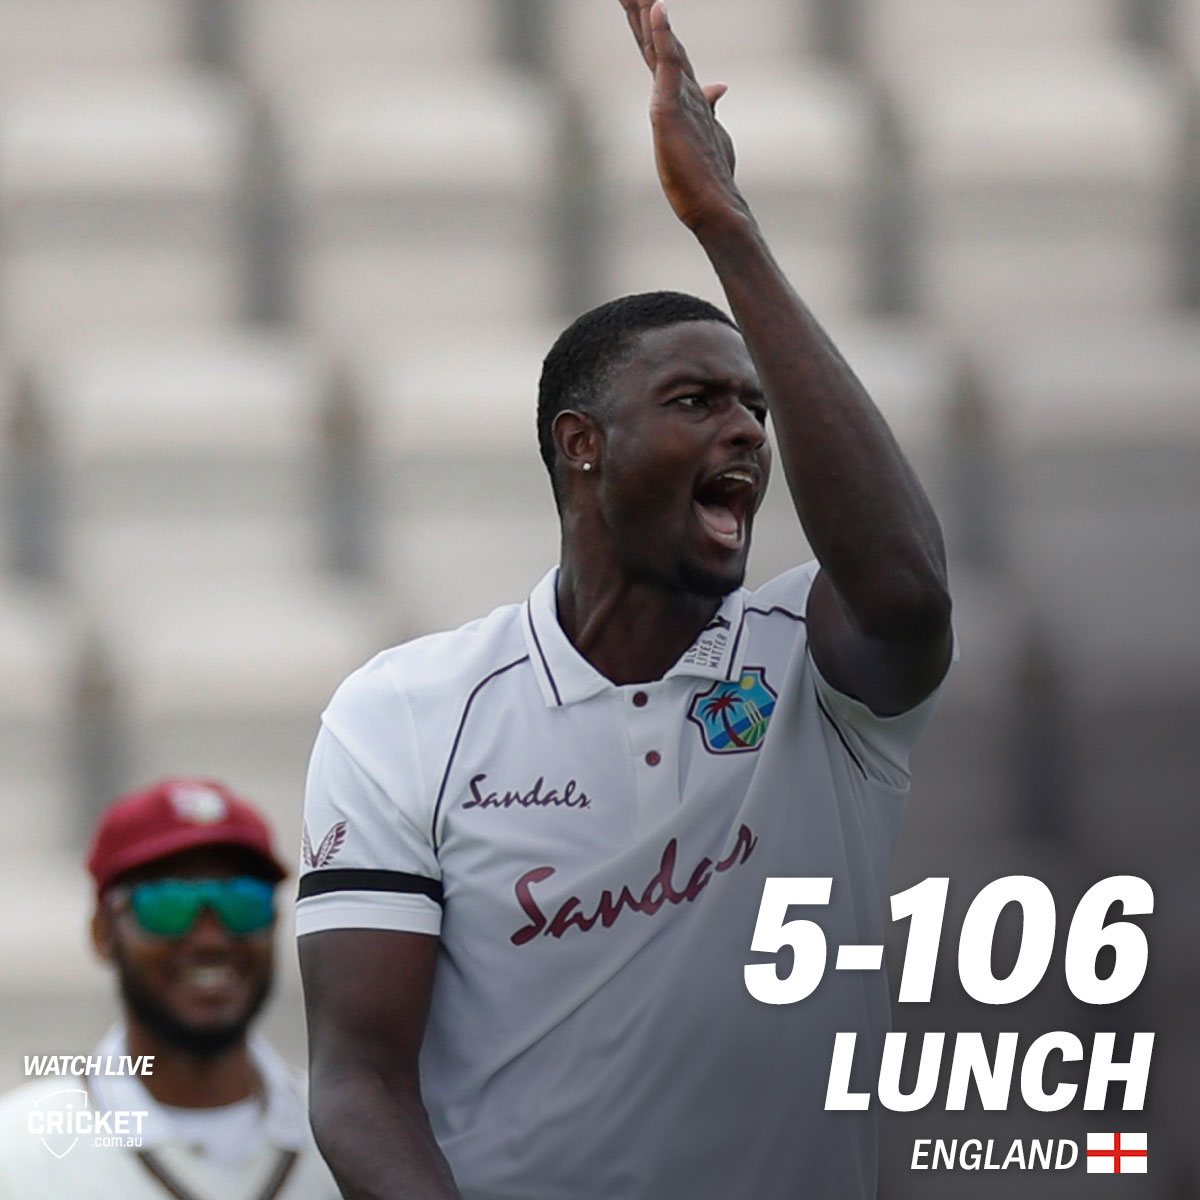 West Indies are in control at lunch on day two. Fans in Australia can watch all the action after lunch right here: cricketa.us/ENGvWI20-1 #ENGvWI